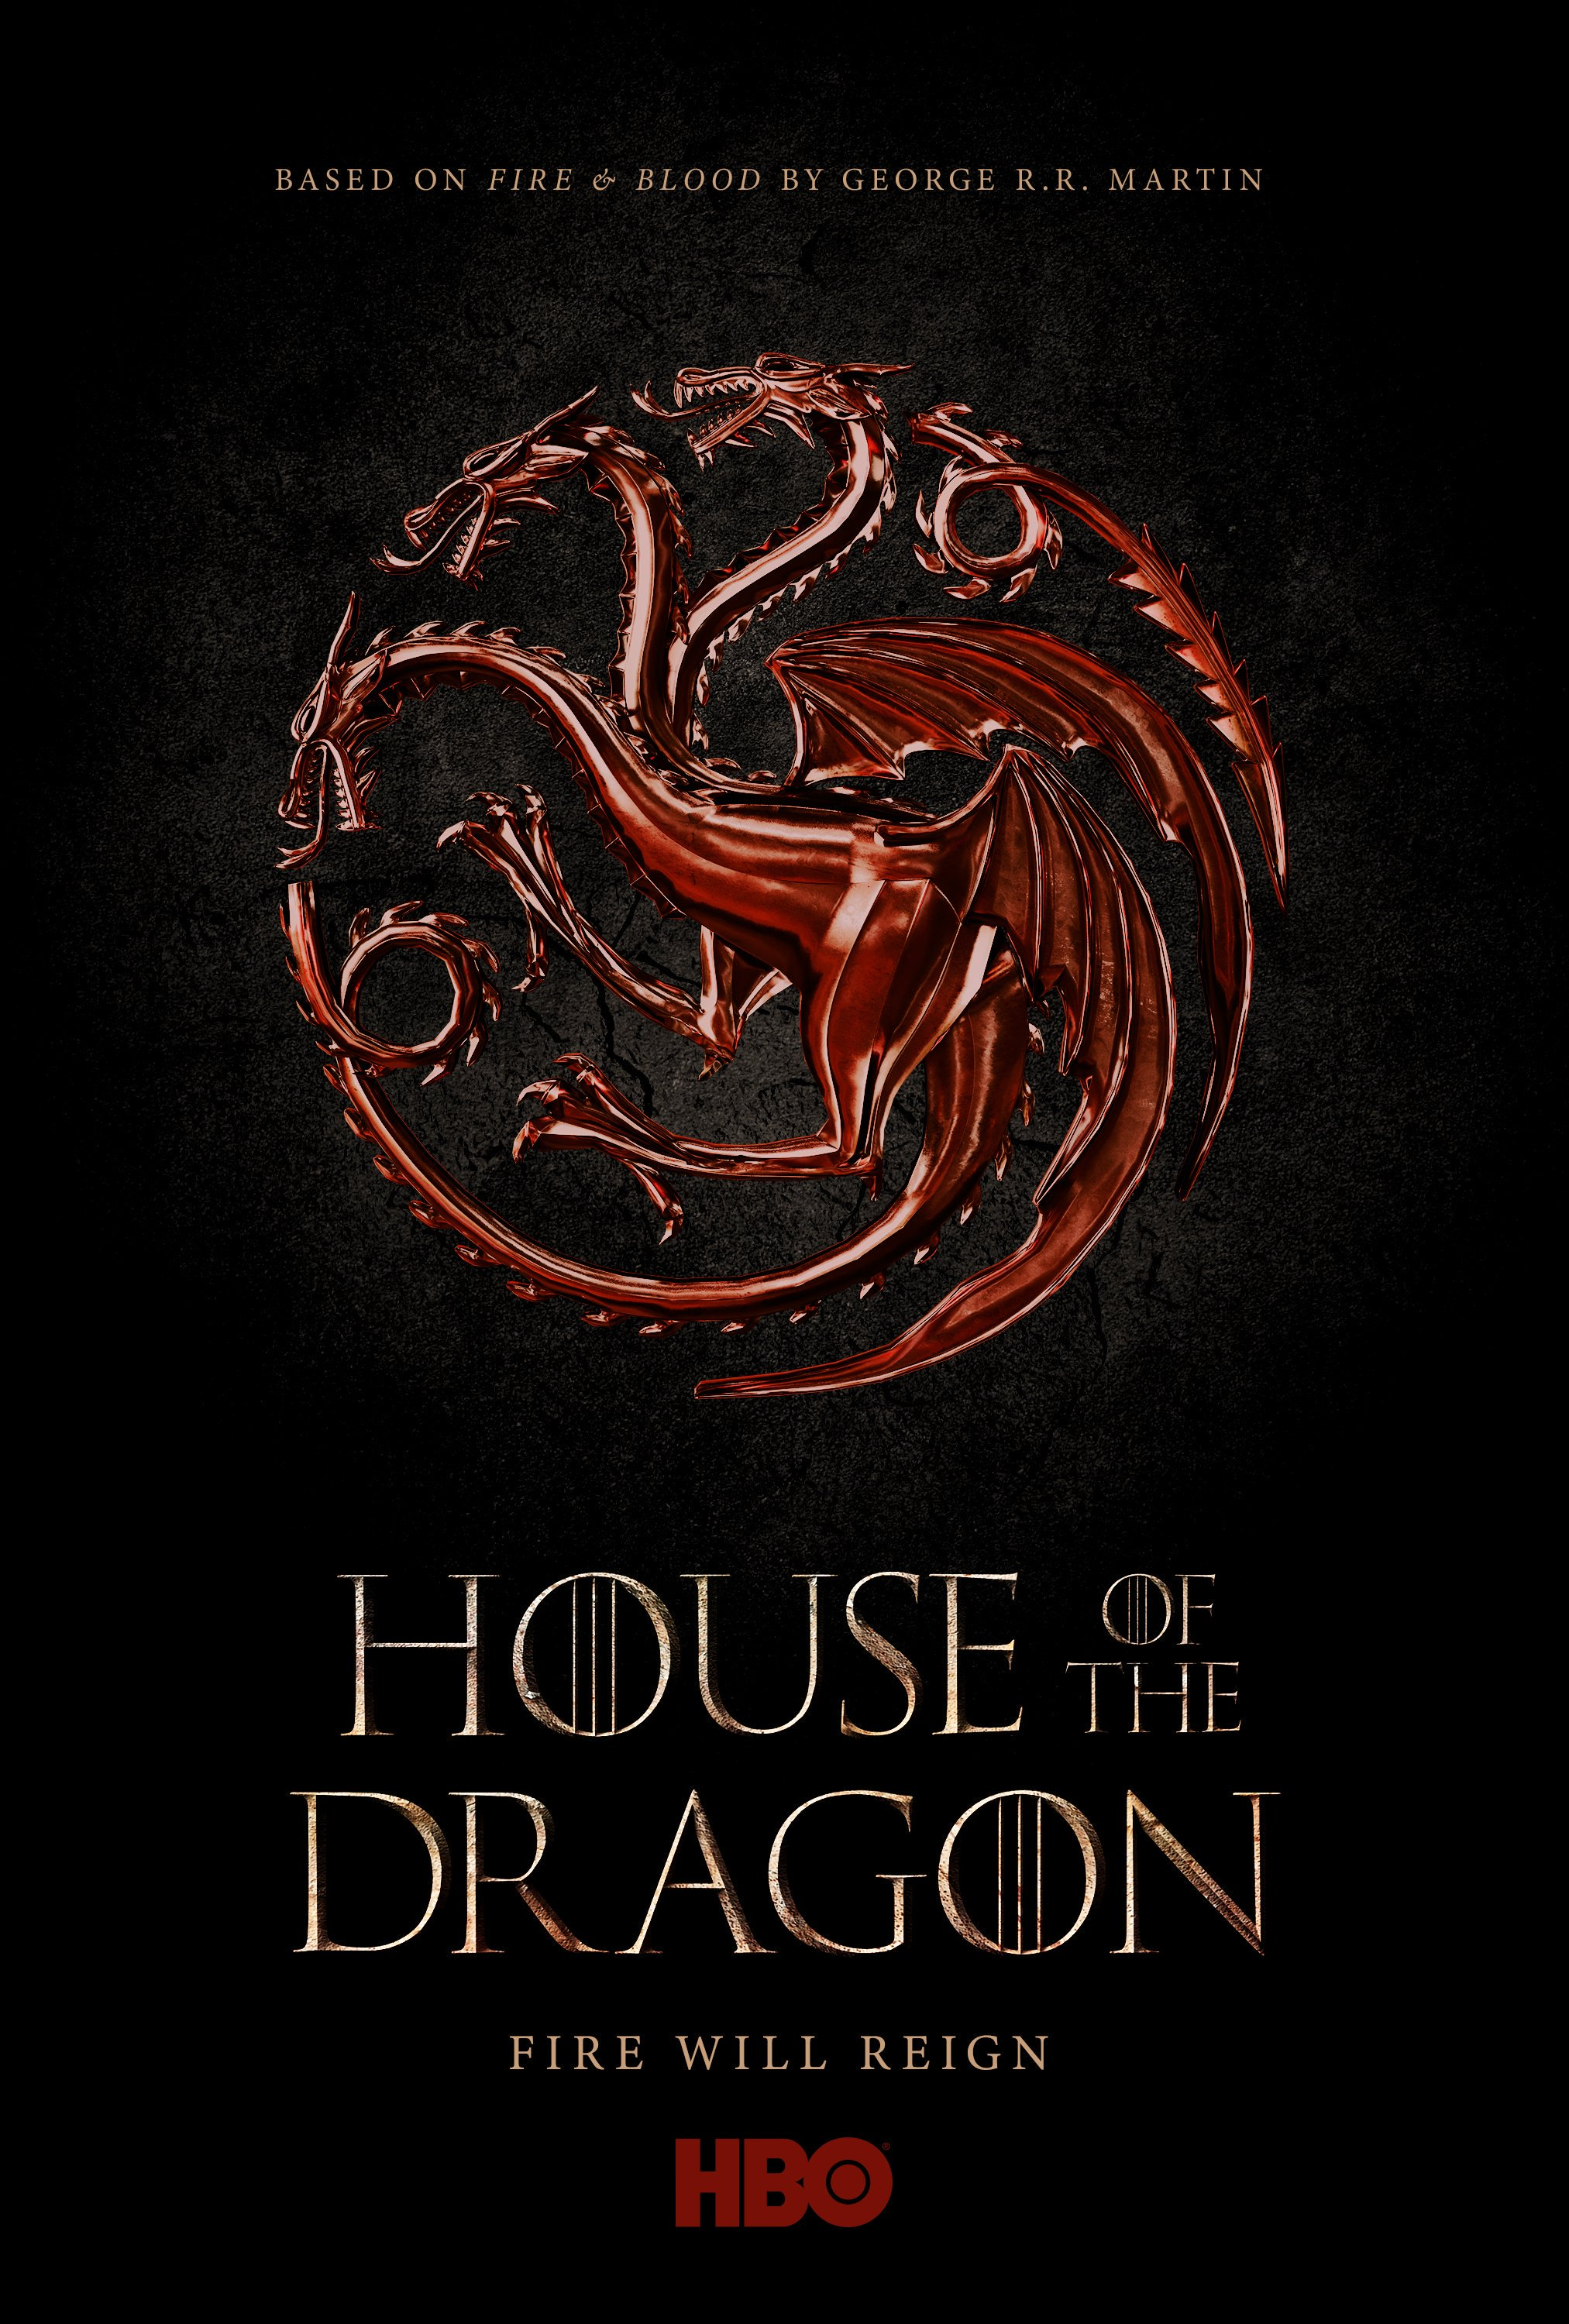 House of the Dragon Announcement Poster